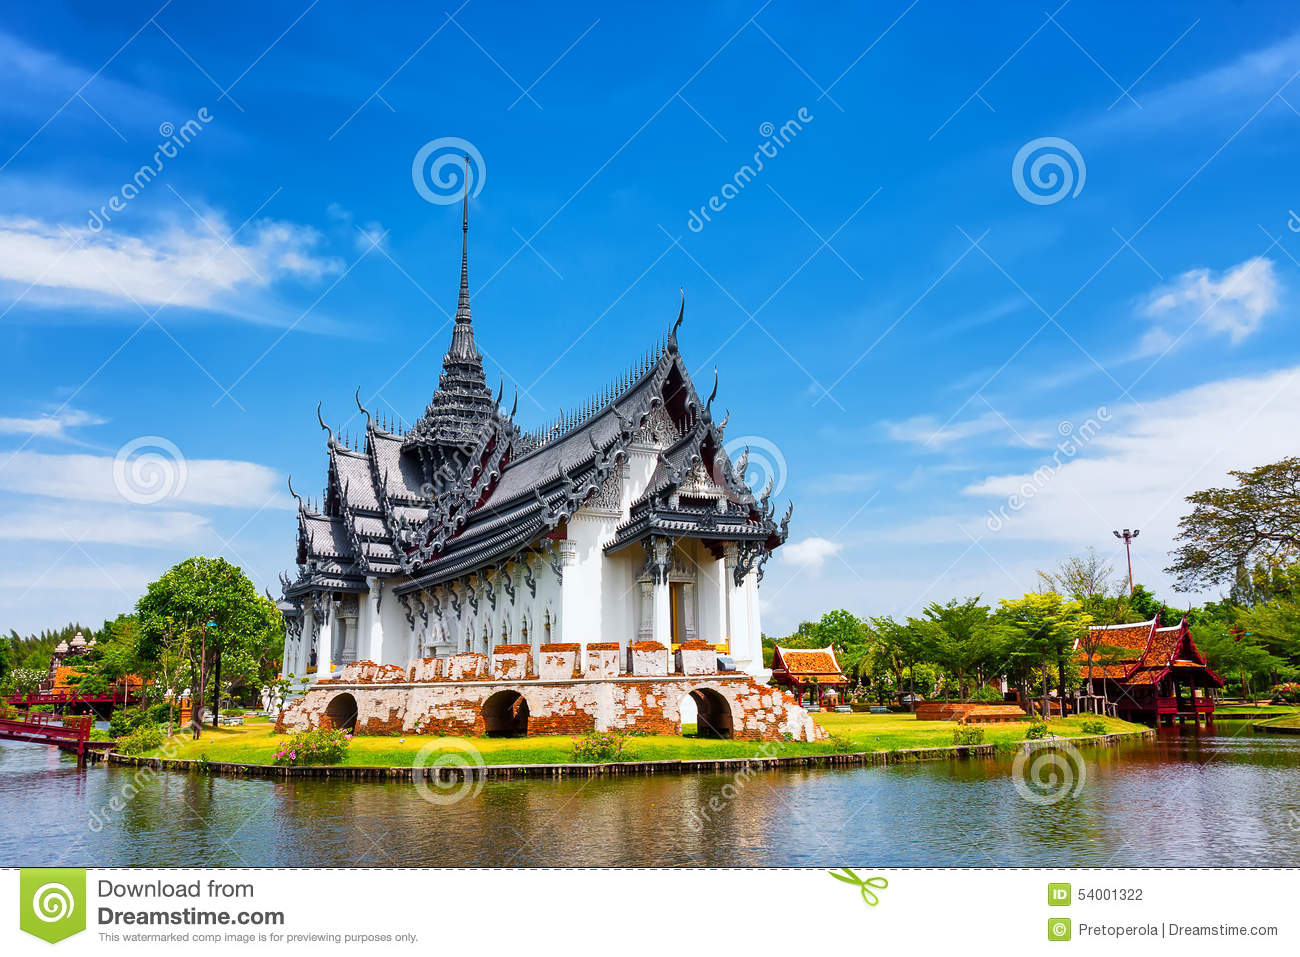 Palais de sanphet prasat ville antique bangkok photo stock image 54001322 for Dessin ville orientale